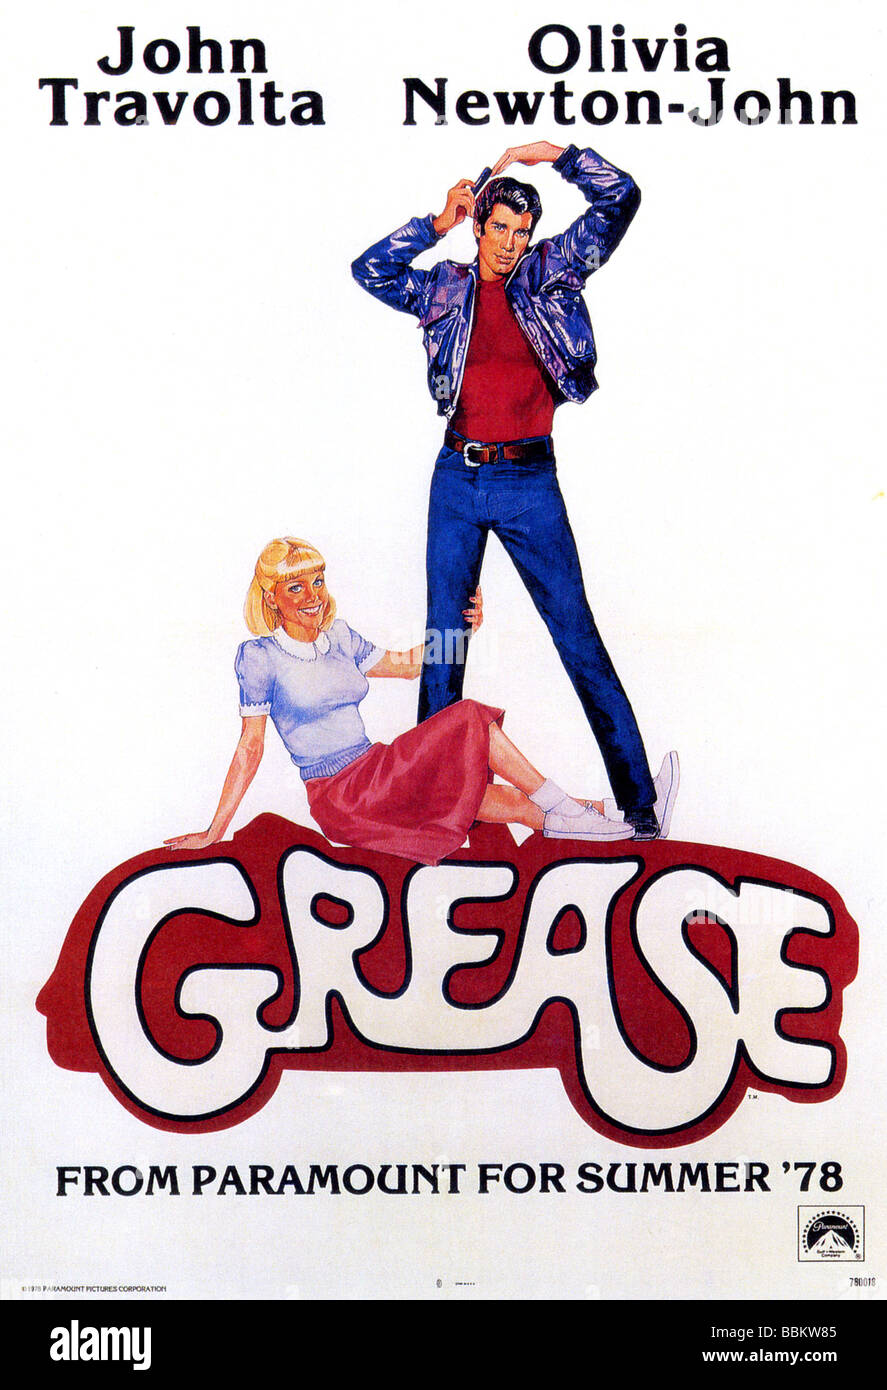 grease poster for 1978 paramount film with olivia newton